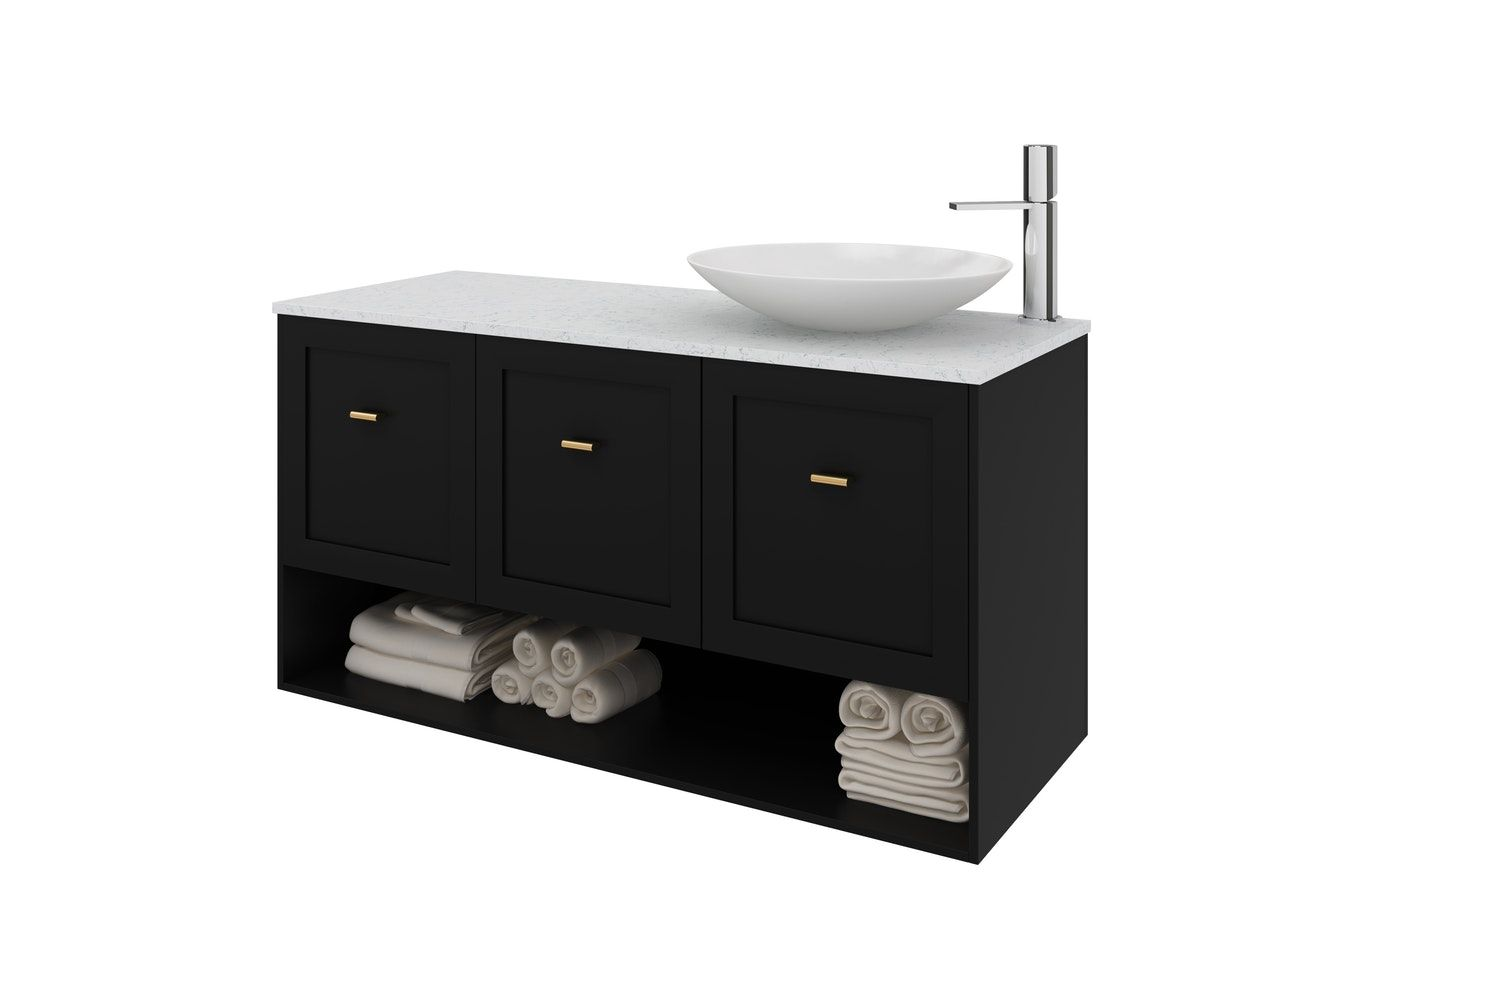 All Rifco vanities are proudly made in Australia, and are ...